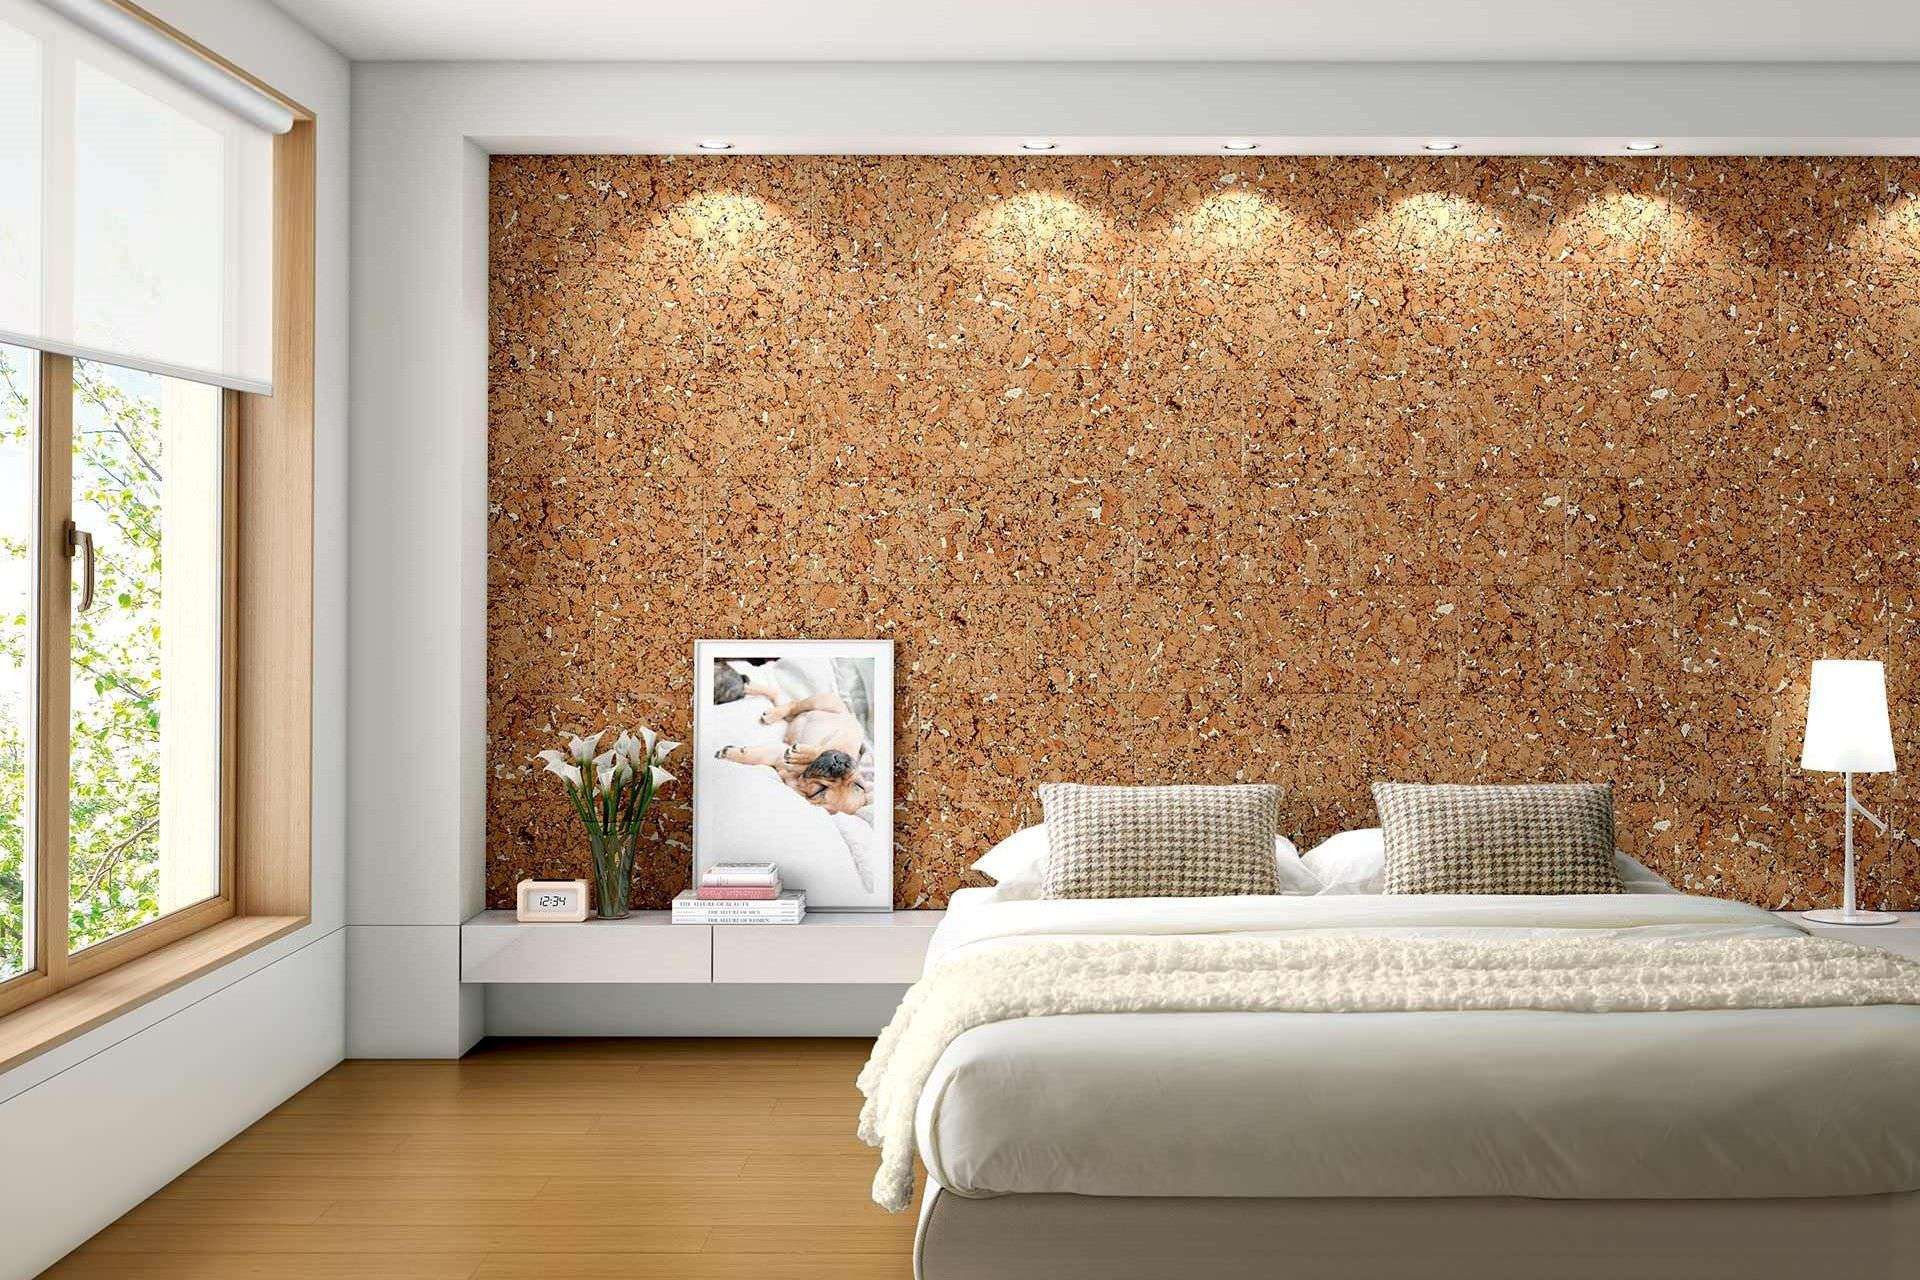 Cork Wallpaper Interior Finishing Advice & Photos. Decorative LED-lighting to emphasize the accent wall